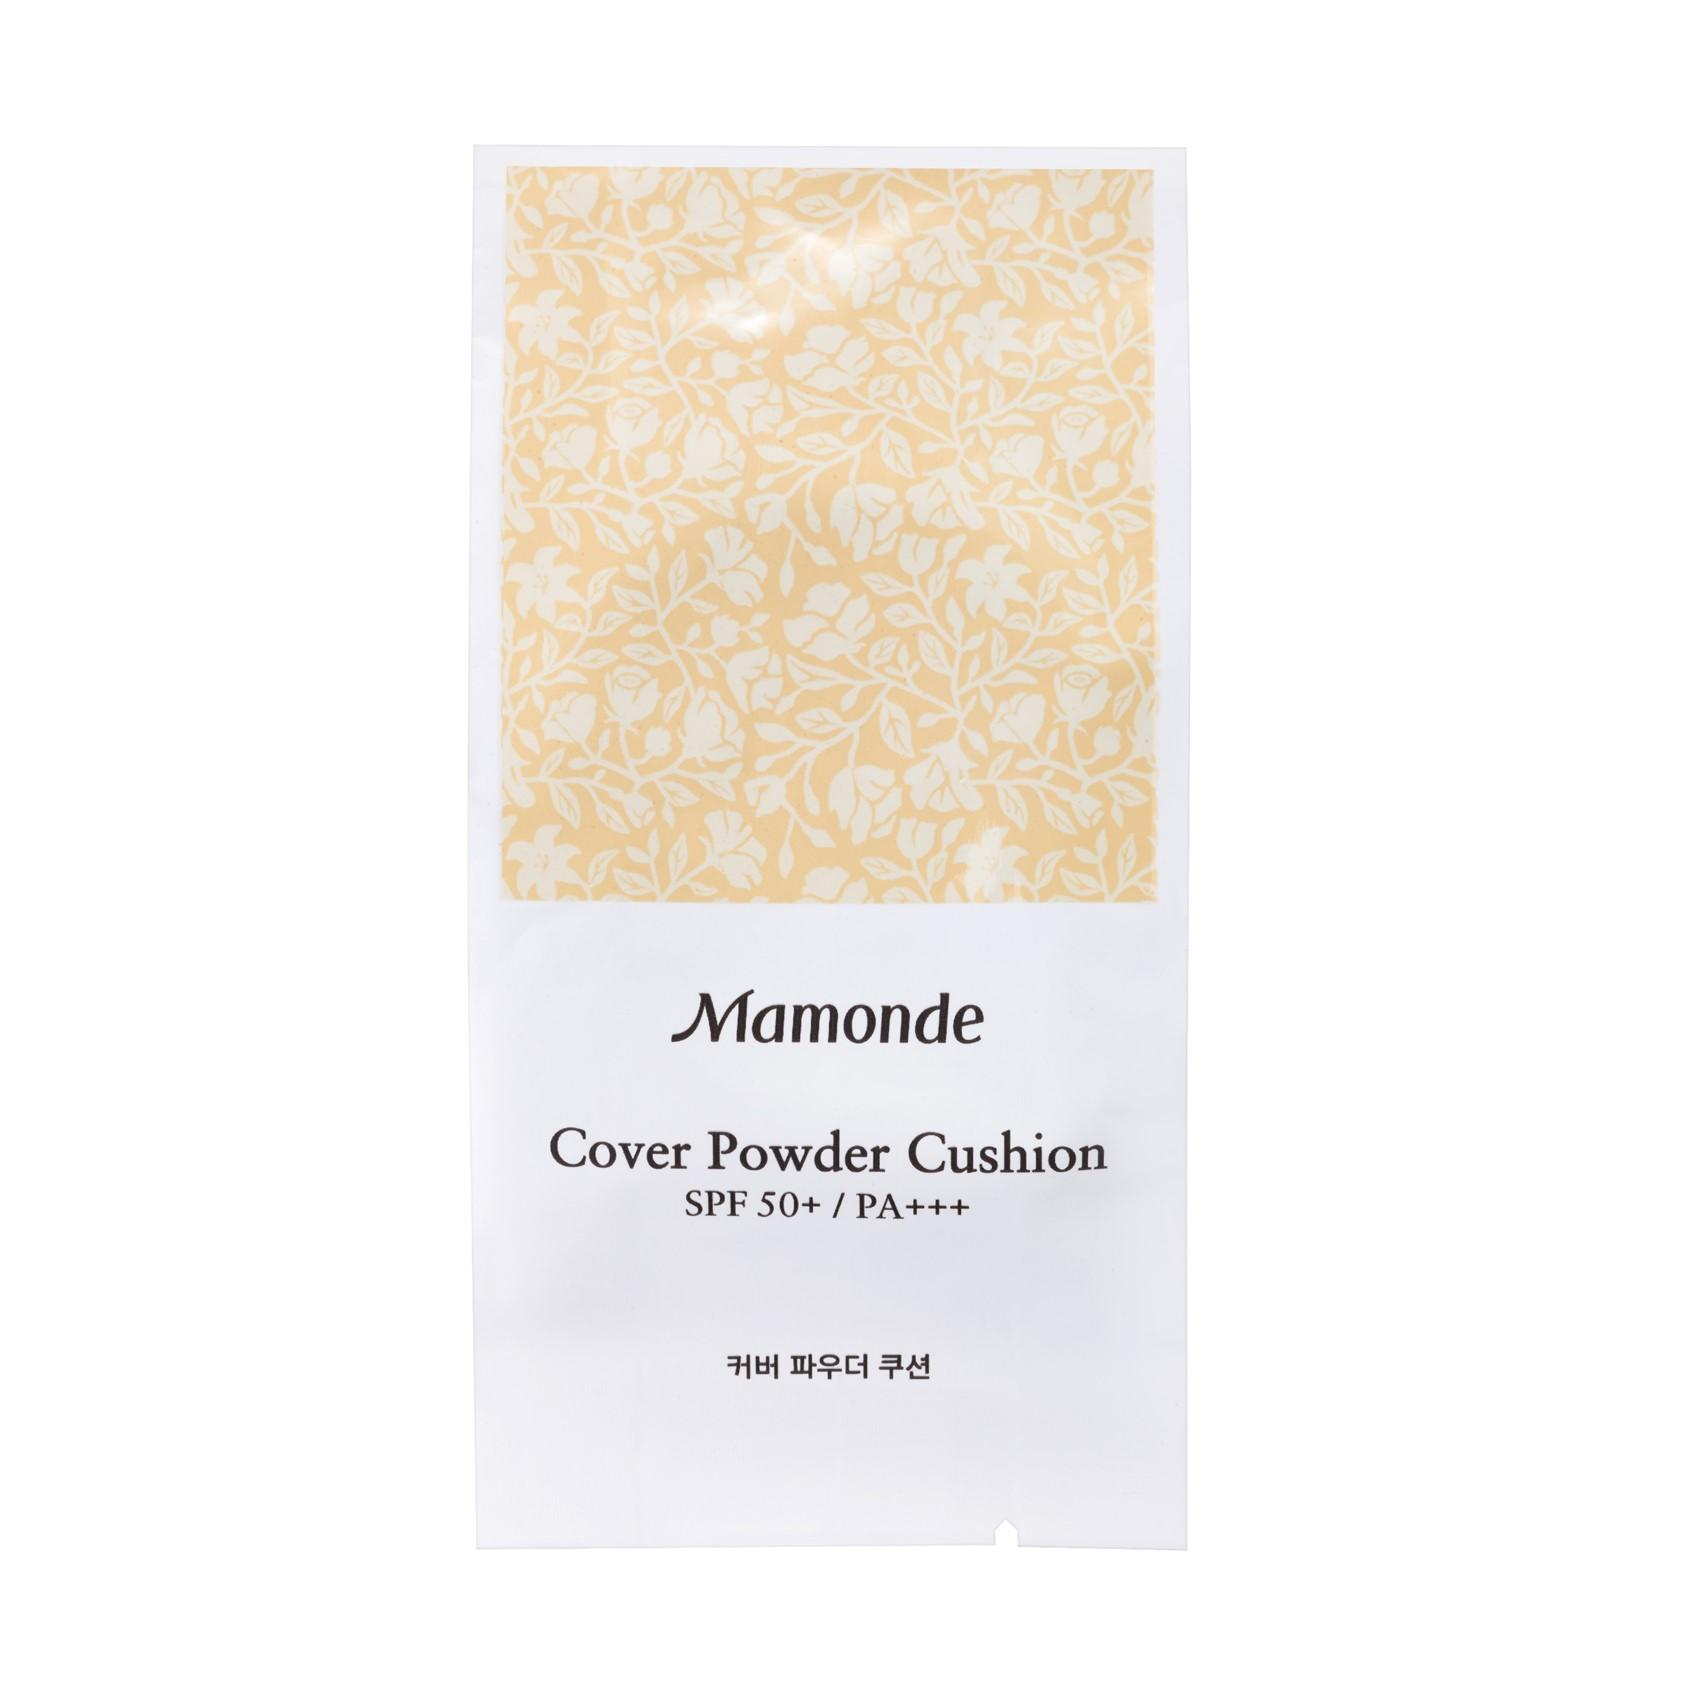 Review 50 Off Mamonde Cover Powder Cushion 3 Shades Available Select From Options Refill 15G Singapore